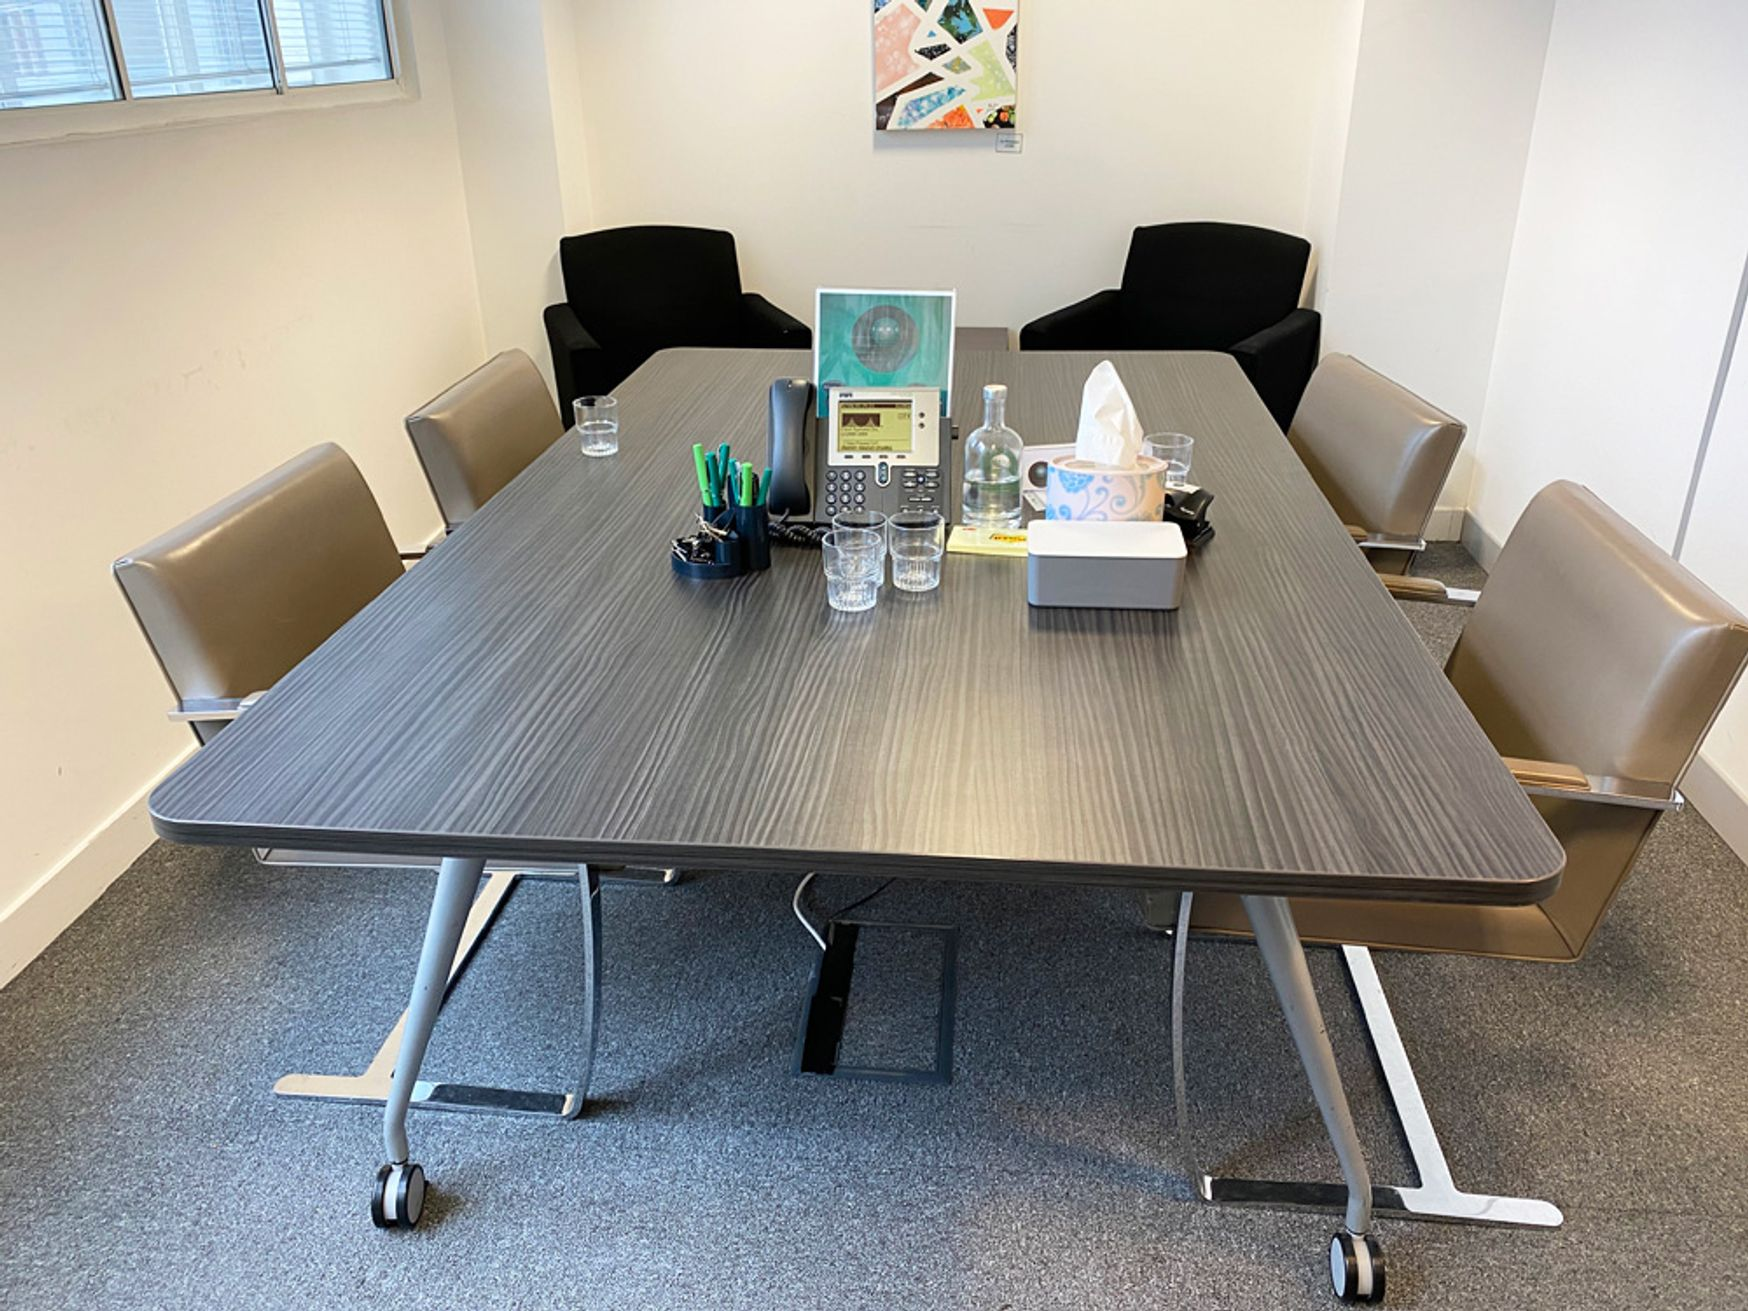 Used meeting table finished in a Zebrano Negro mfc. 2000mm w x 1250mm d